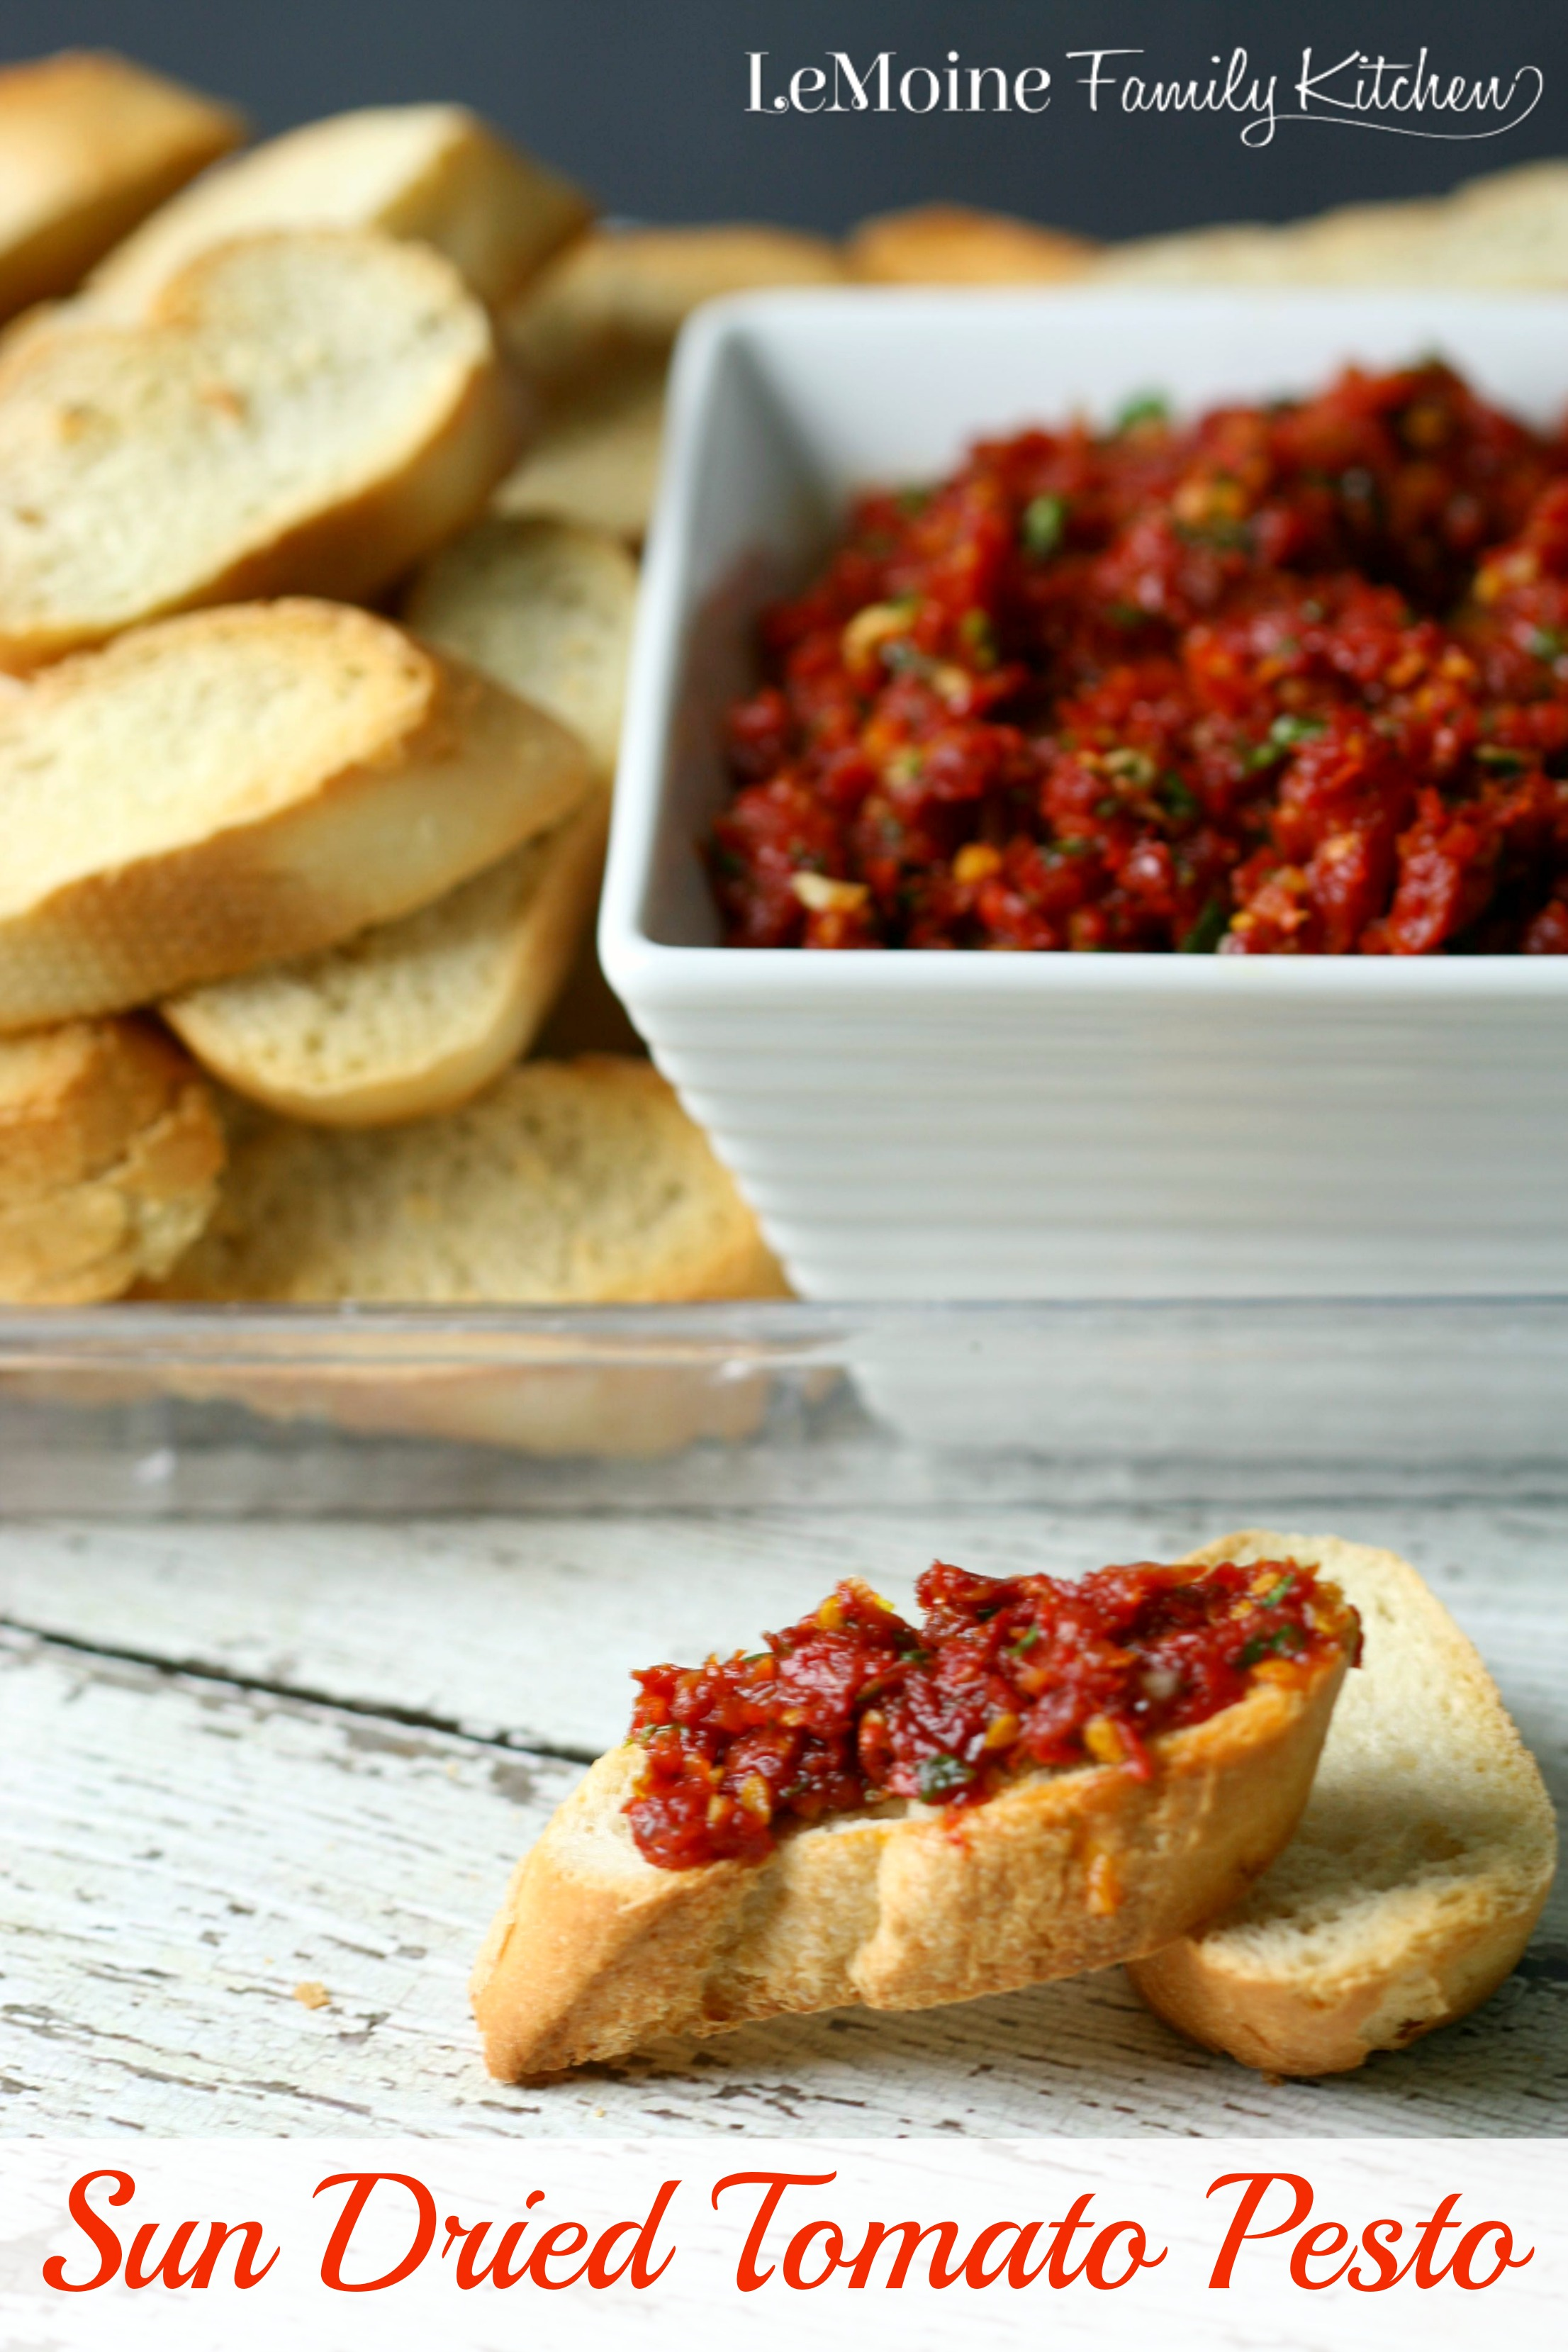 Sun Dried Tomato Pesto | LeMoine Family Kitchen ... Perfect to serve with crostini, tossed with pasta or on top of grilled chicken.